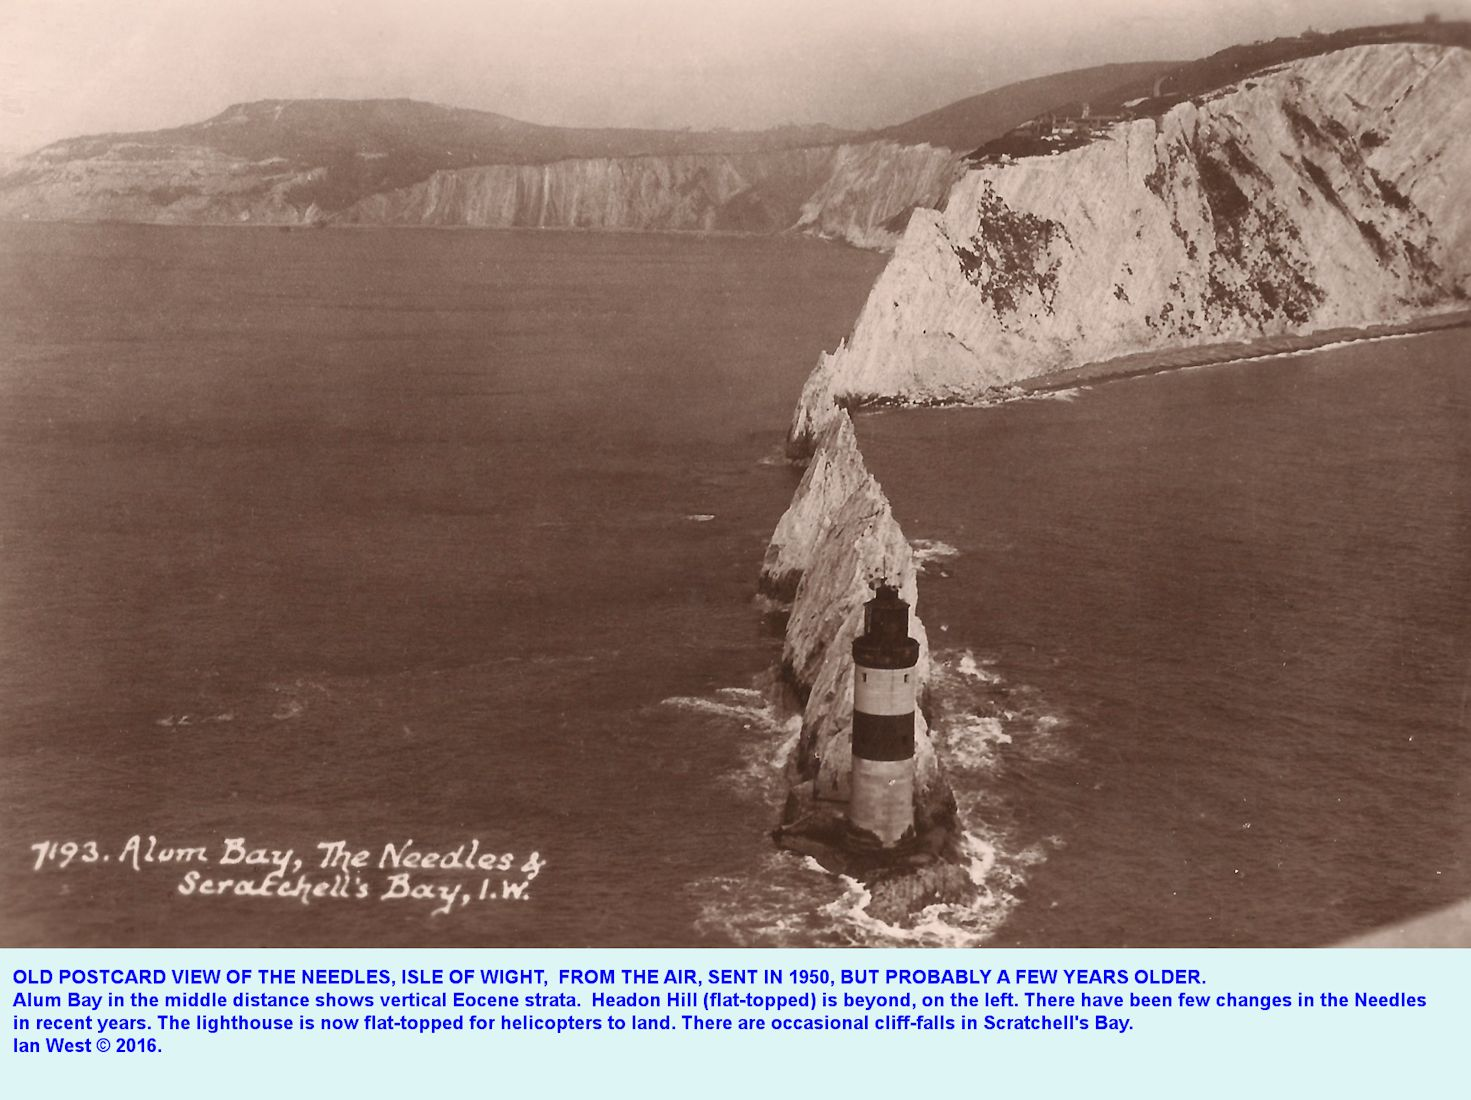 A pre-1950 postcard, aerial photograph of the Needles, Isle of Wight